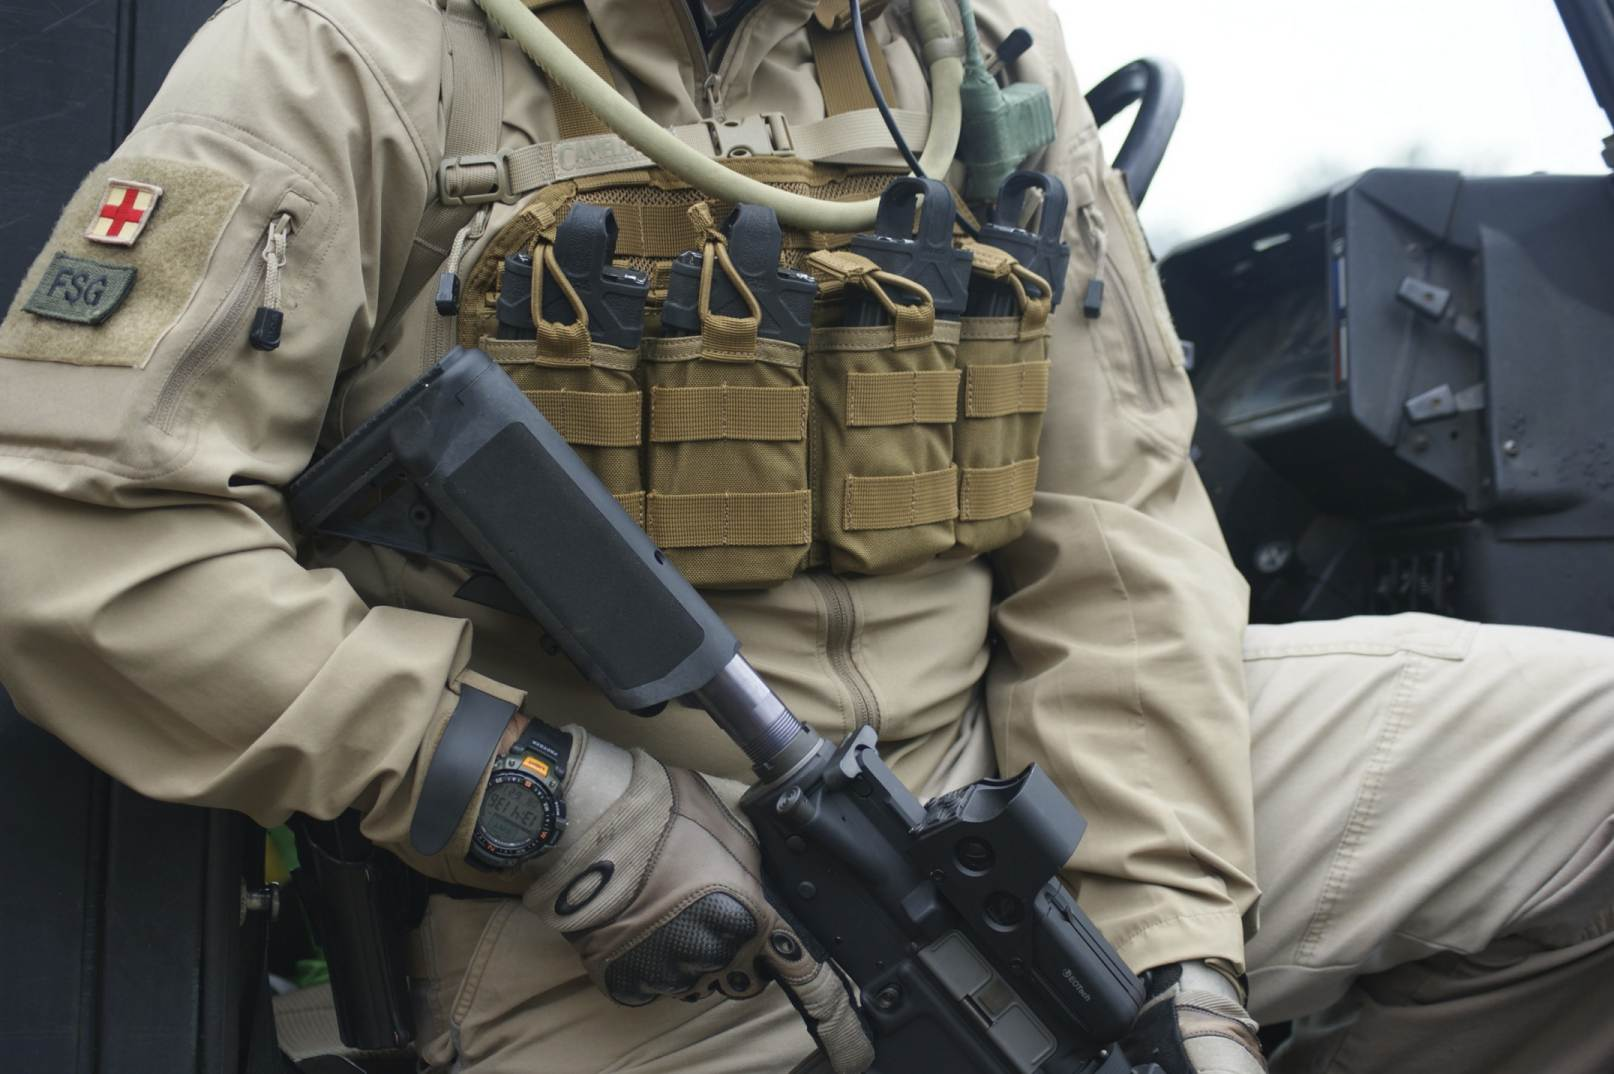 S8pmc eu wp Content uploads 2012 06 volk Tactical Gear 20 additionally 36 moreover  in addition  likewise Harris So  Radios. on tactical radio operator